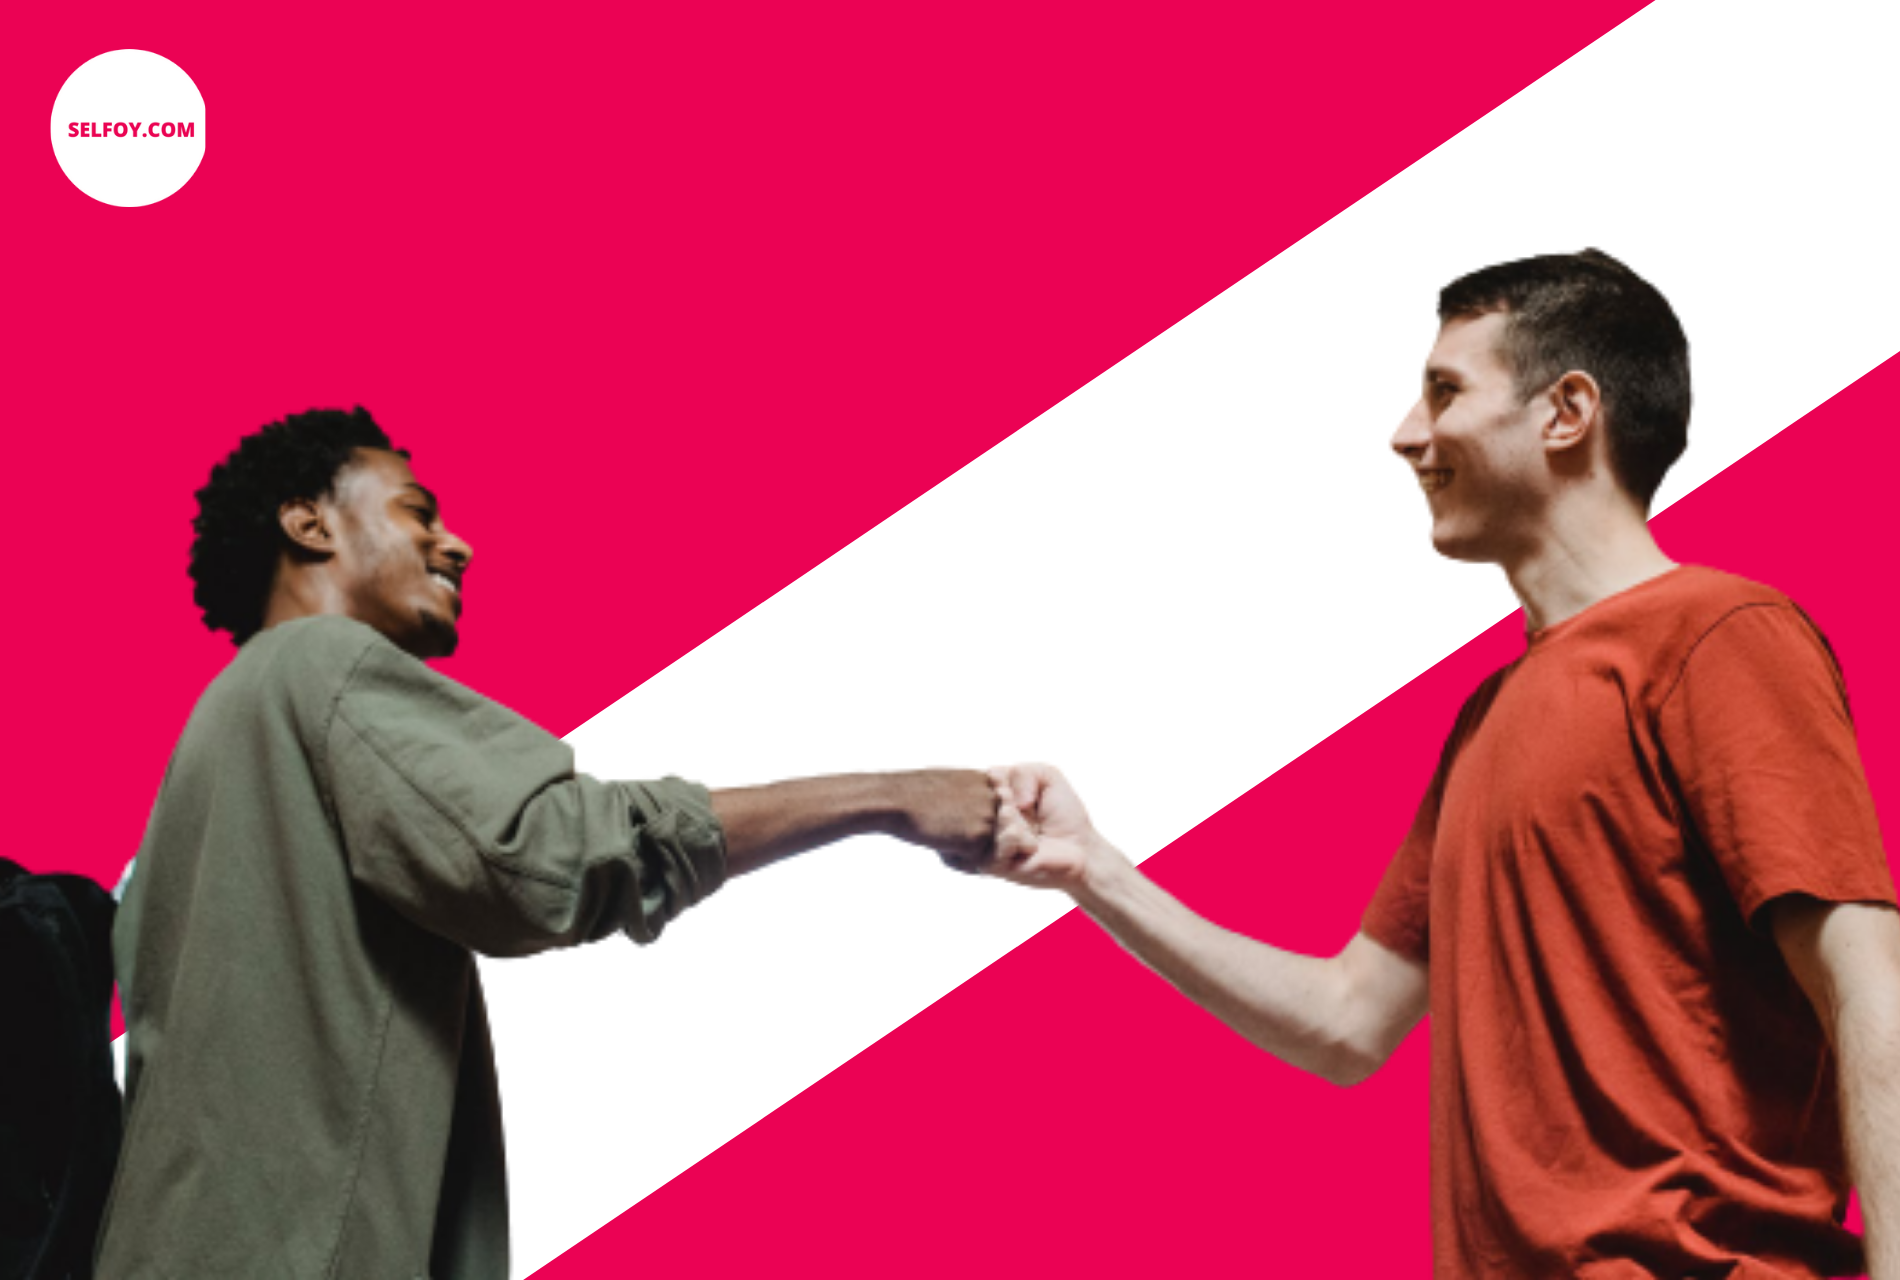 two guys shaking hand to start work in health care industry